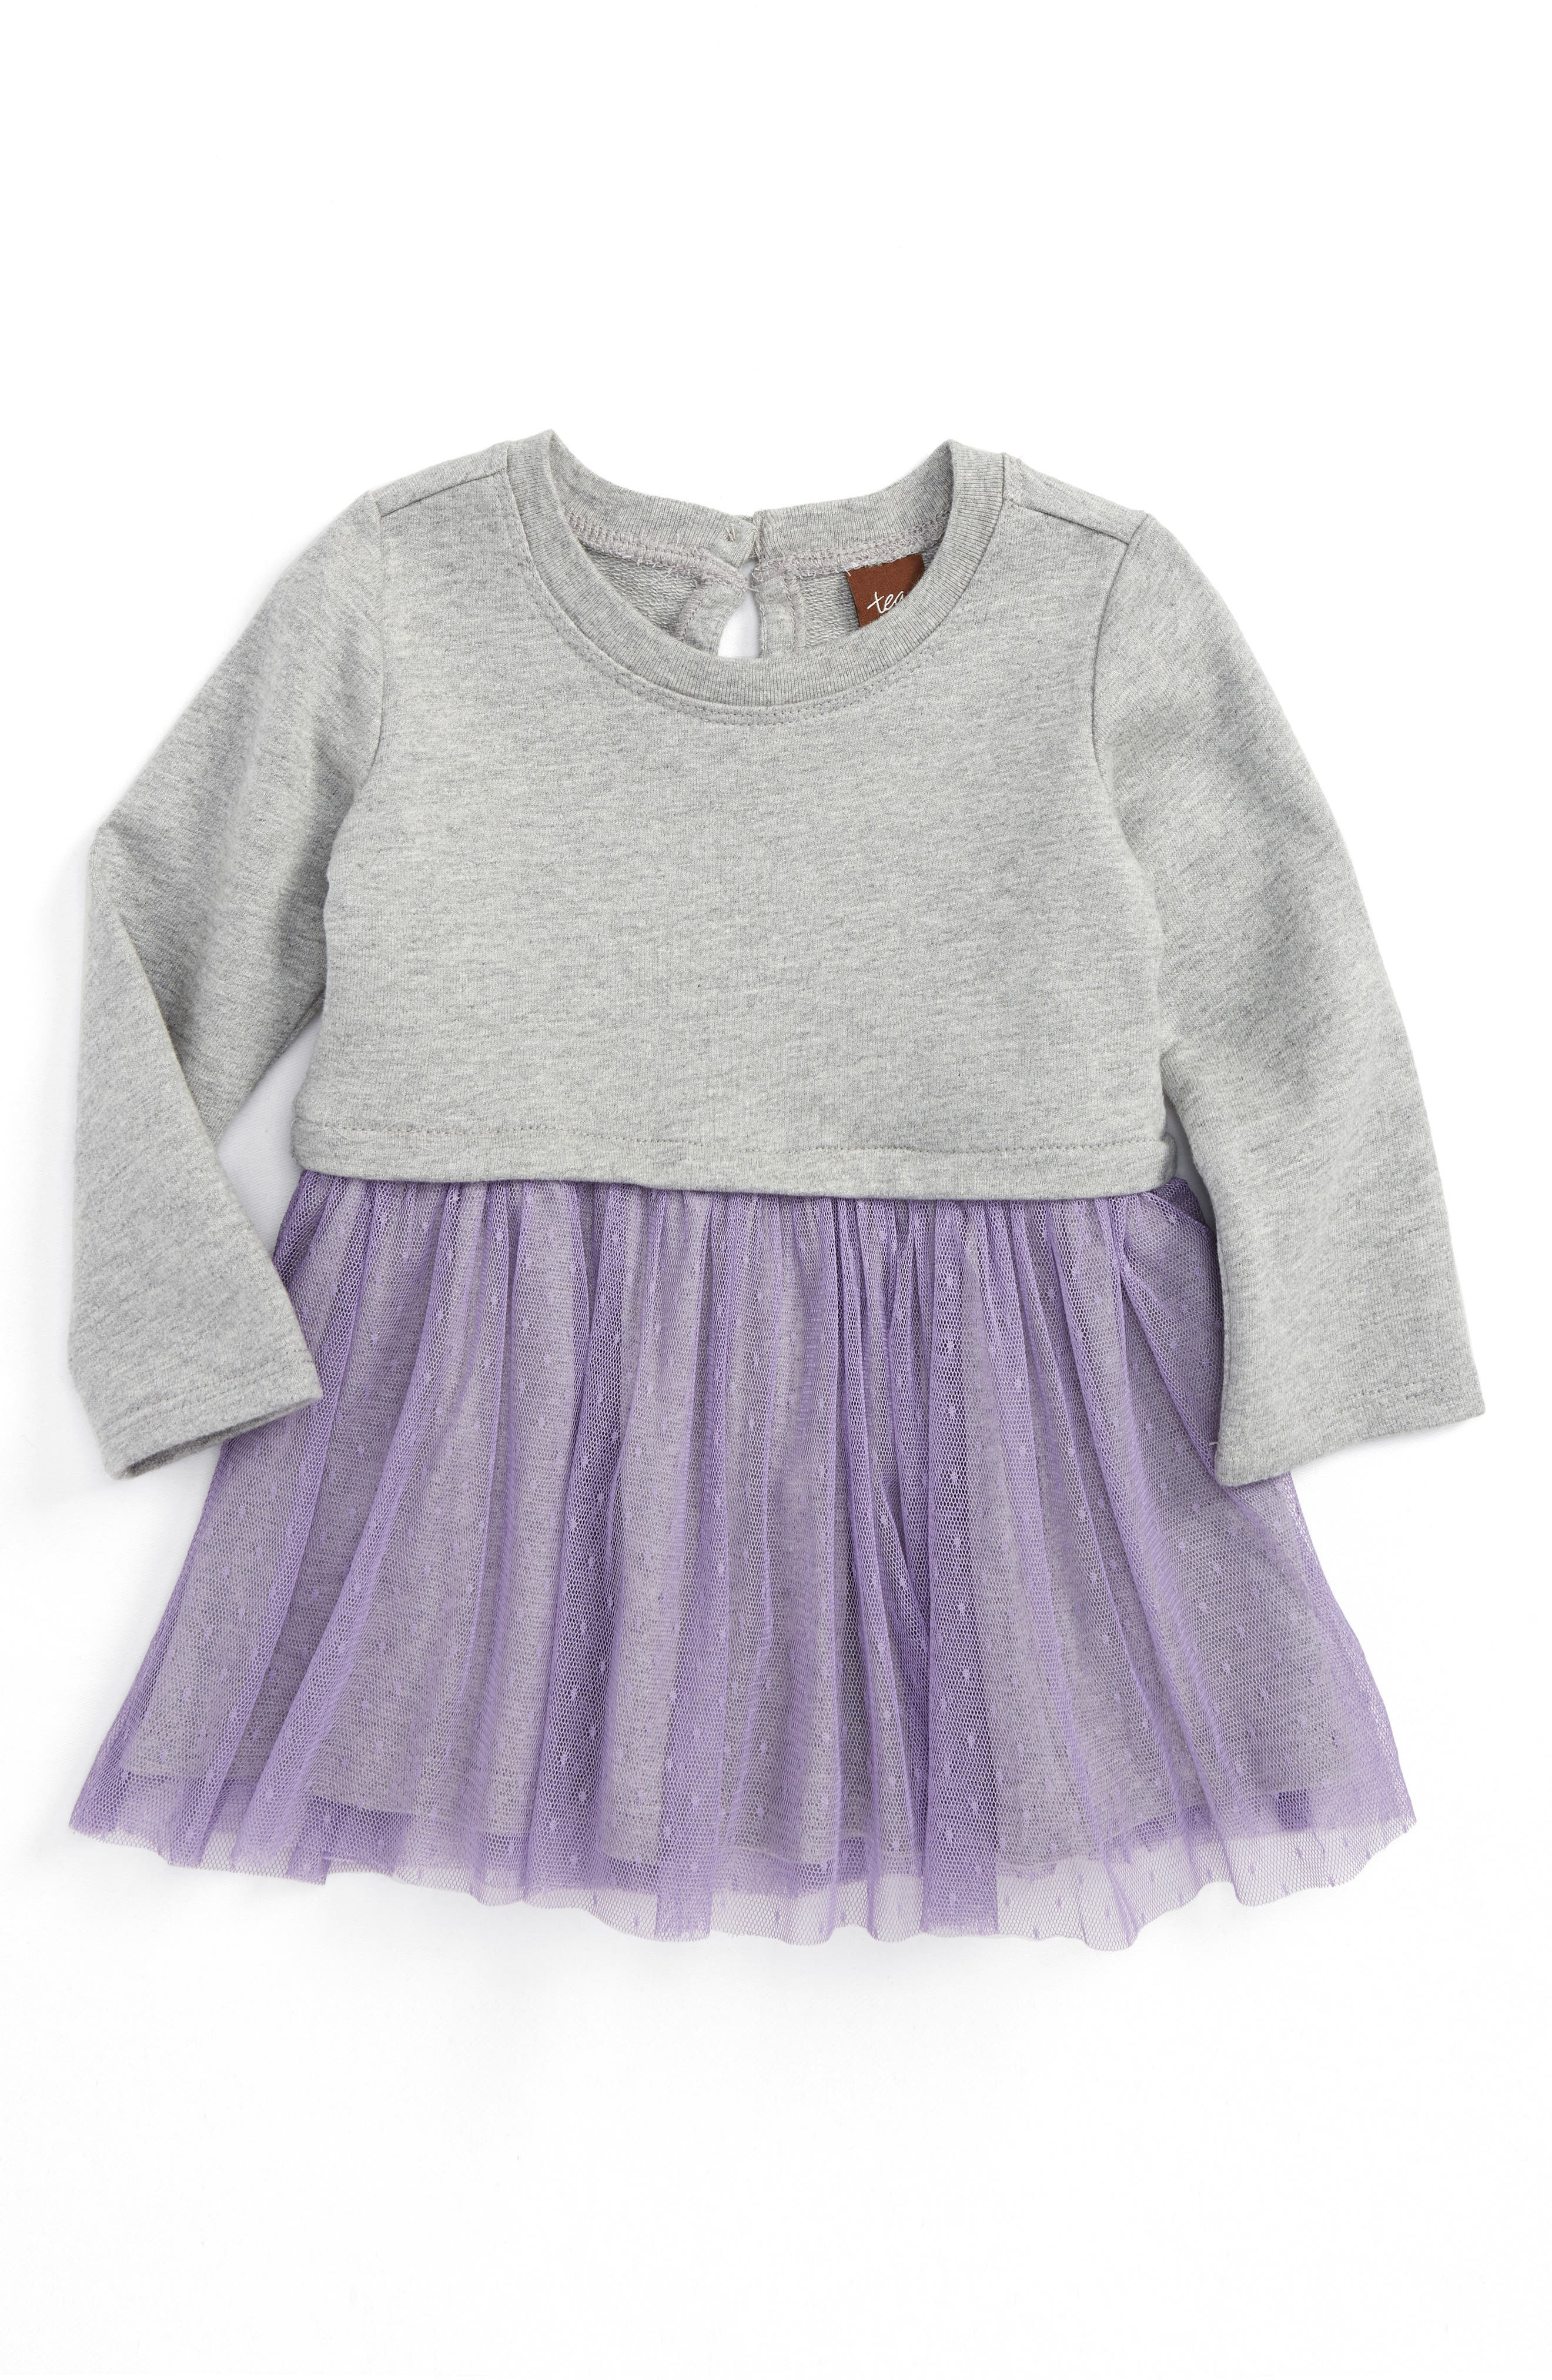 Main Image - Tea Collection Tulle Skirted Dress (Baby Girls)